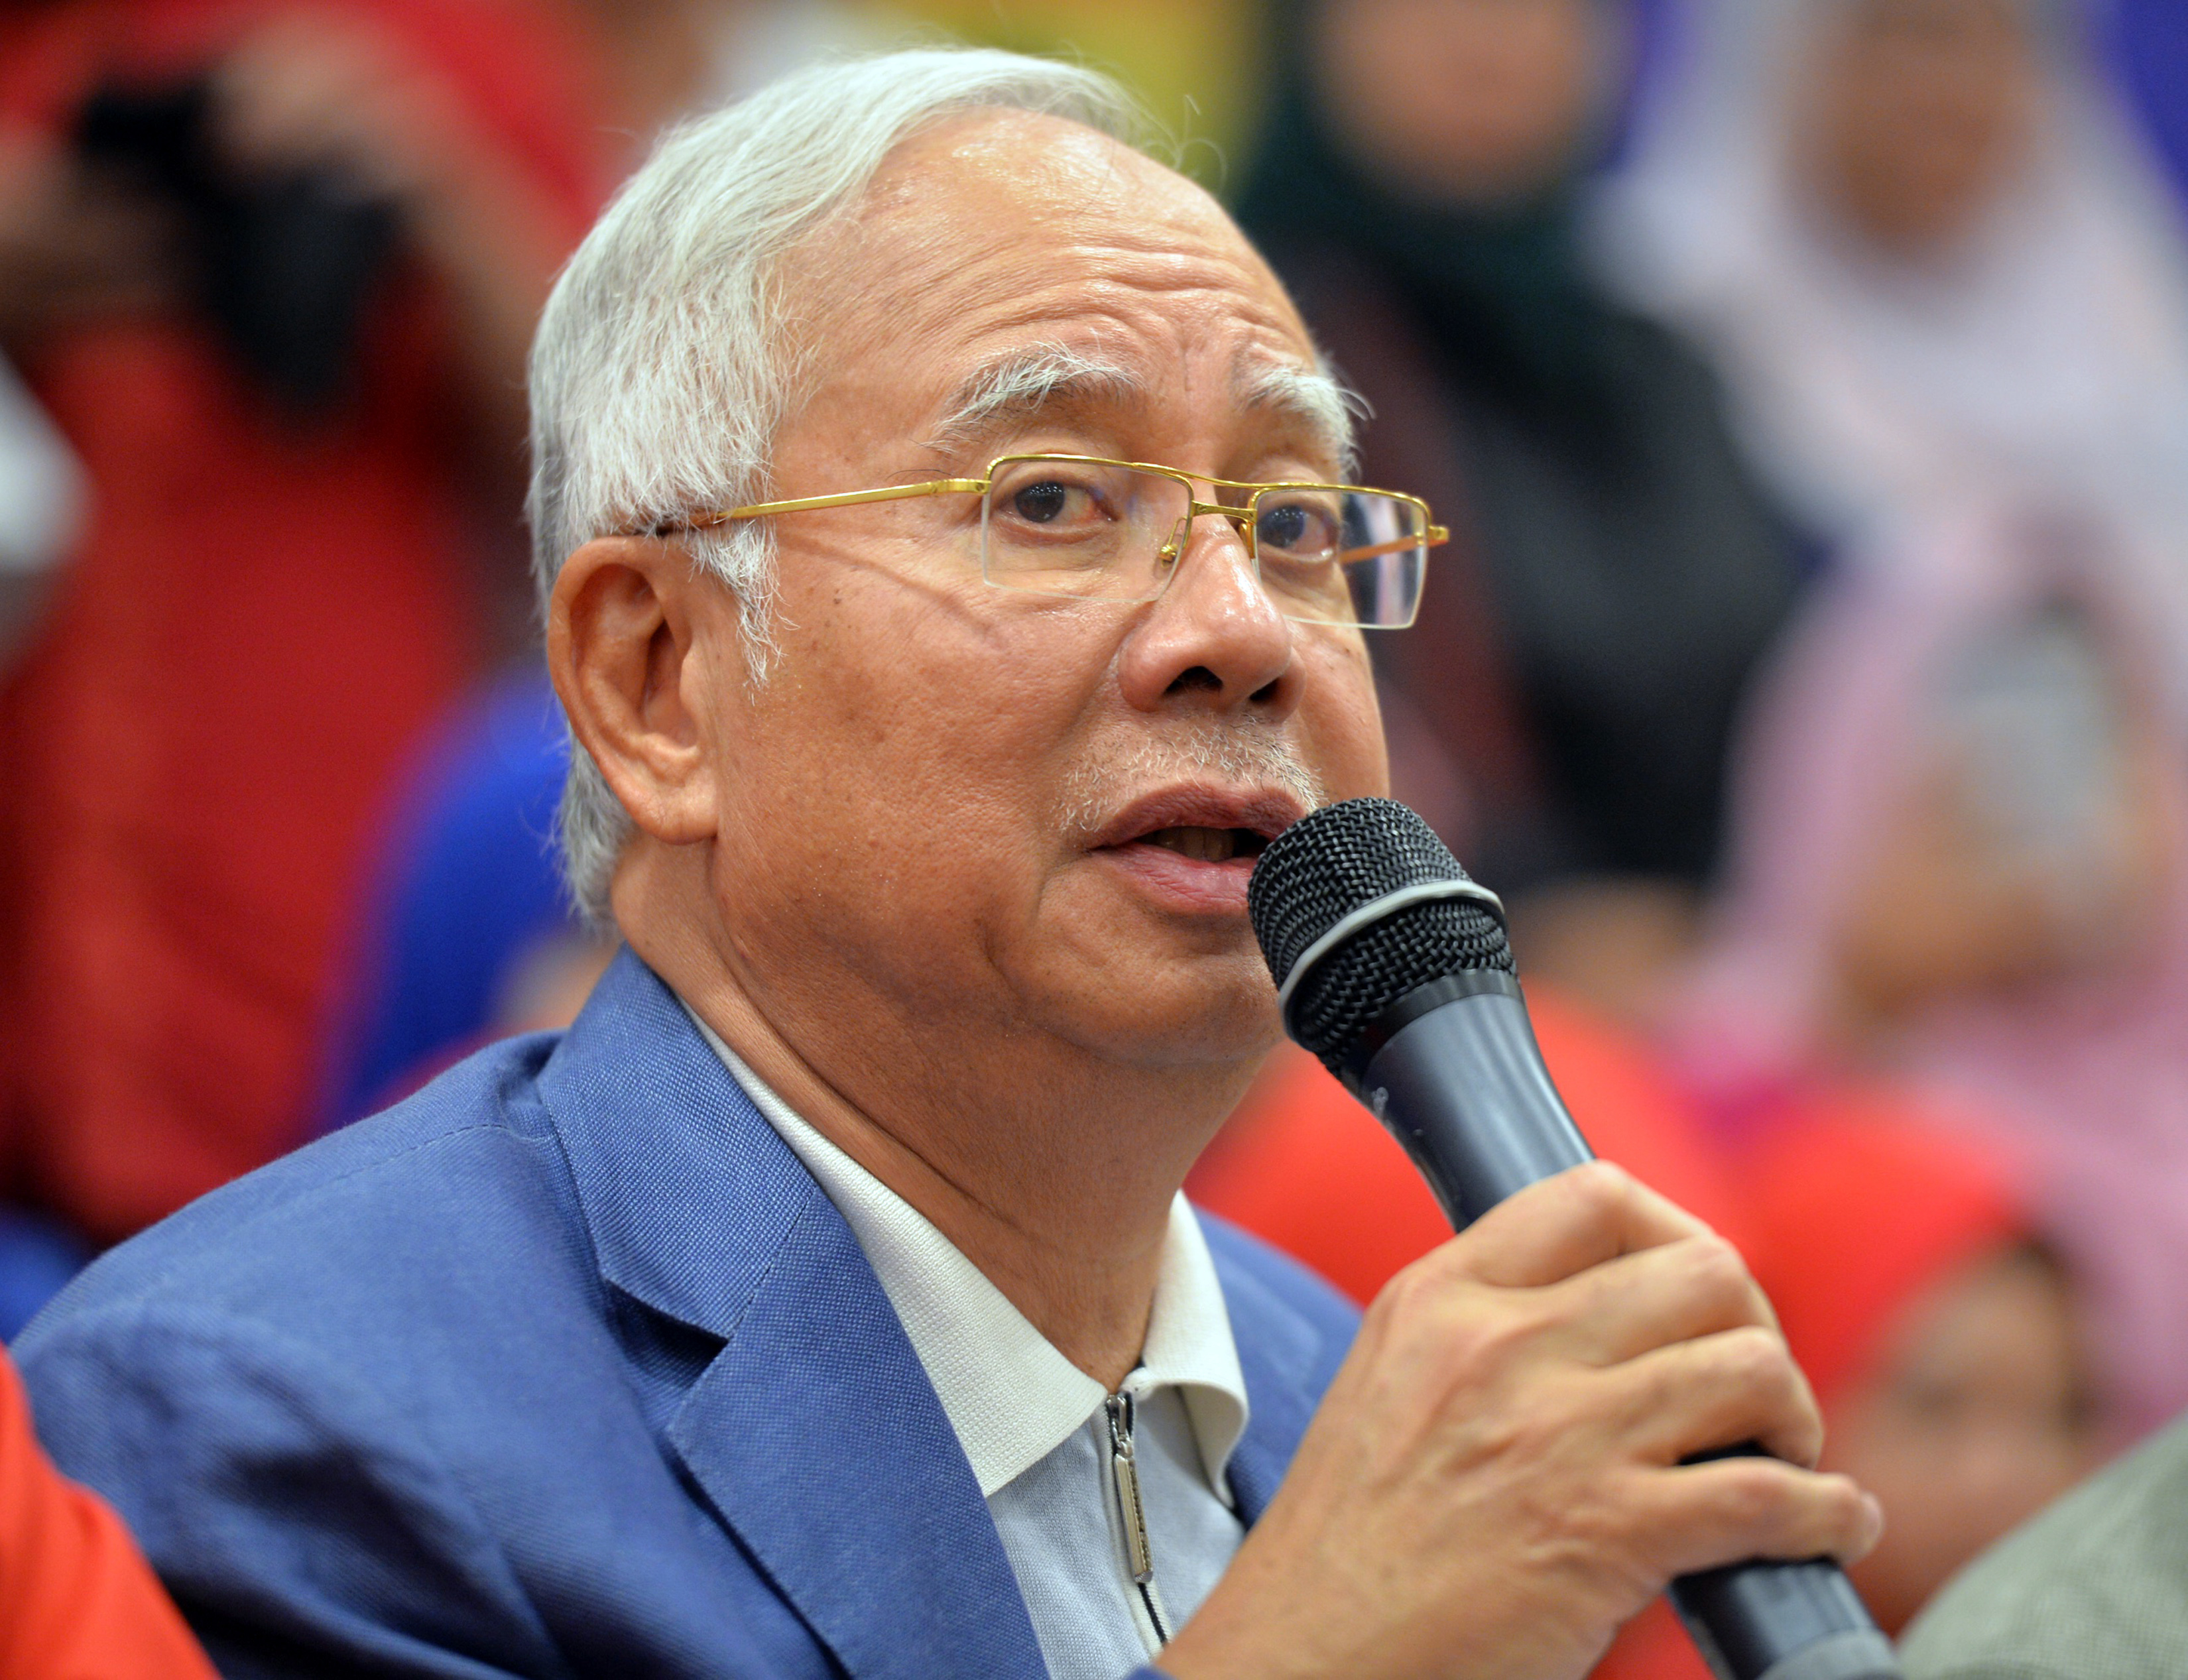 Former Malaysian Prime Minister Najib Razak speaks during a press conference in Kuala Lumpur, Malaysia, Saturday, May 12, 2018. Najib says he's resigning as head of his Malay party to take responsibility for the electoral defeat that ended his coalition's 60-year grip on power. PHOTO: AP